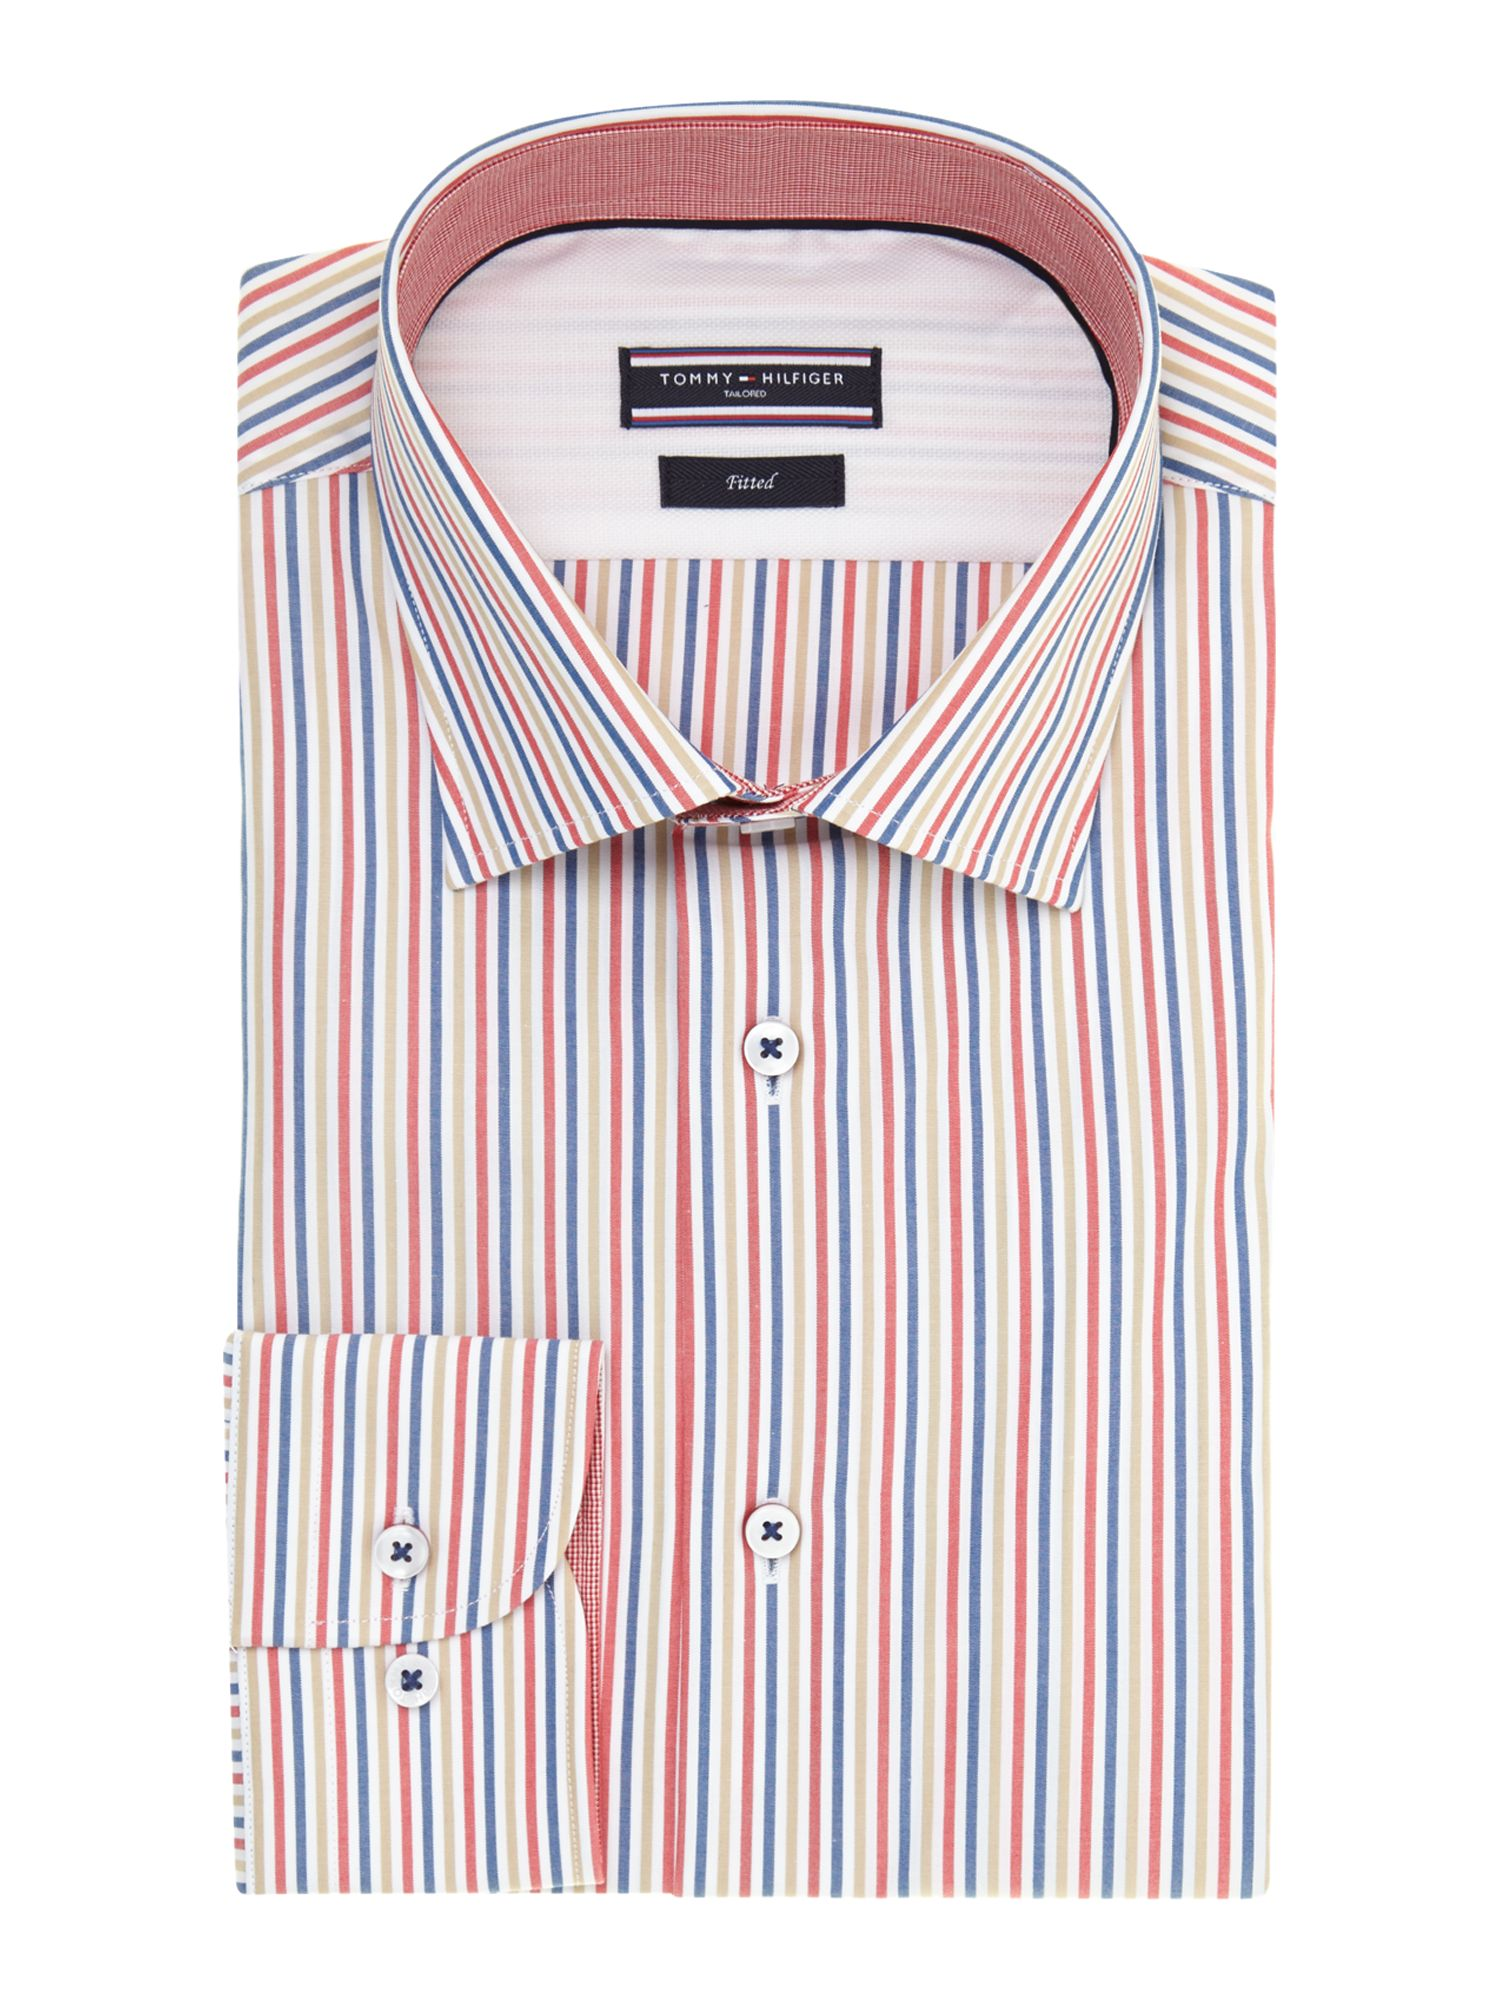 Jonny multi stripe regular fit shirt